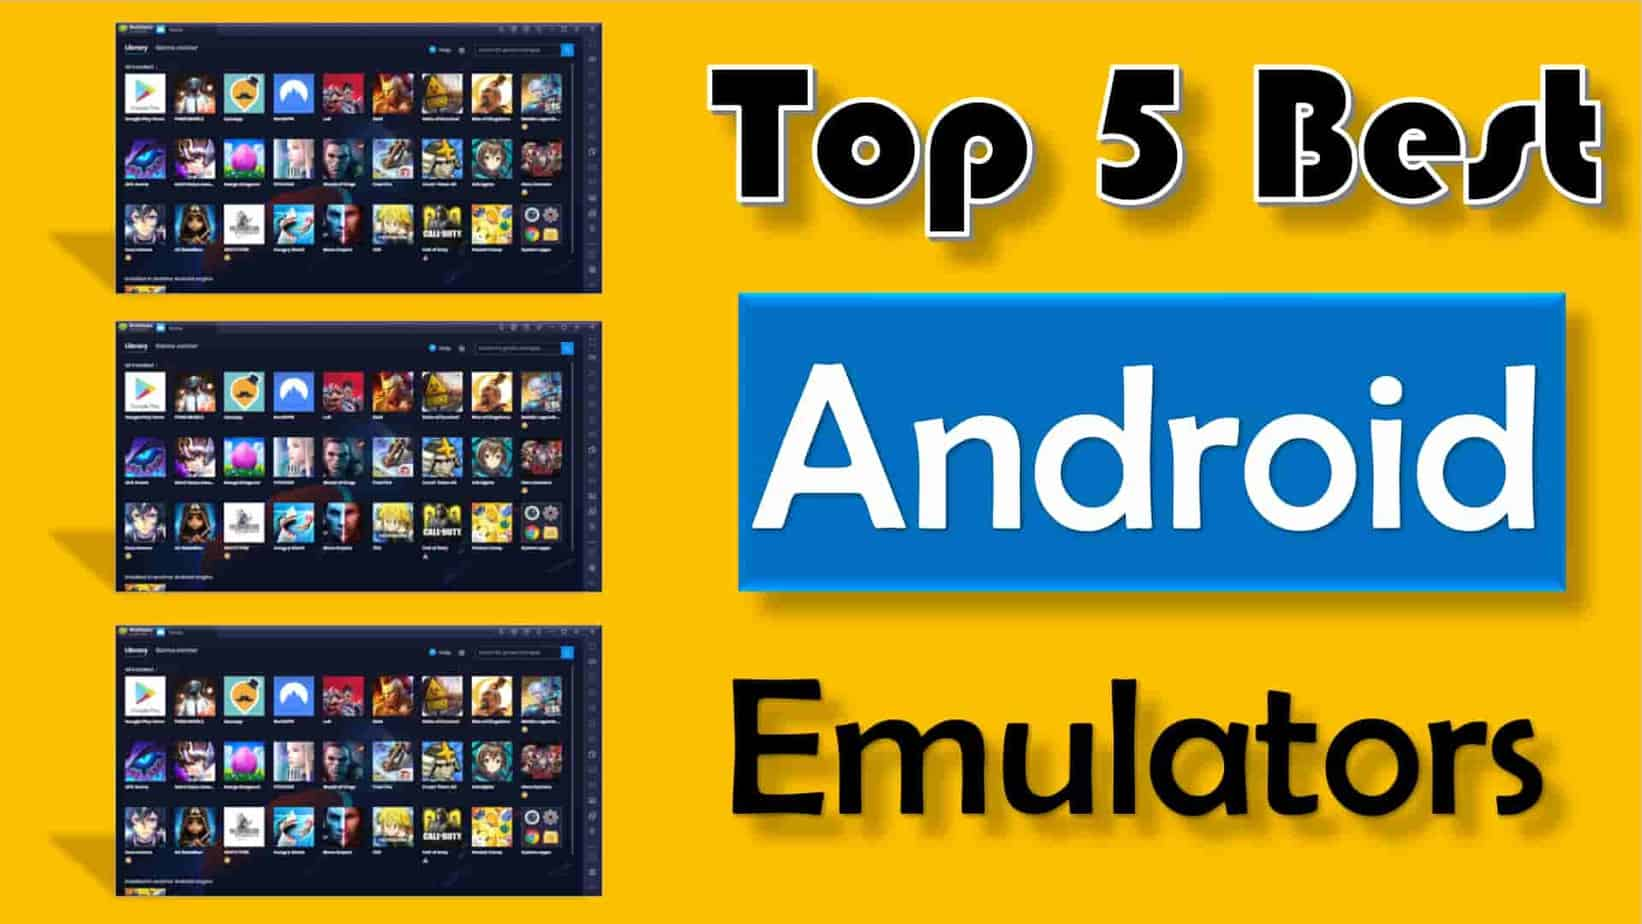 Top 5 Best Android Emulators For Windows & Mac